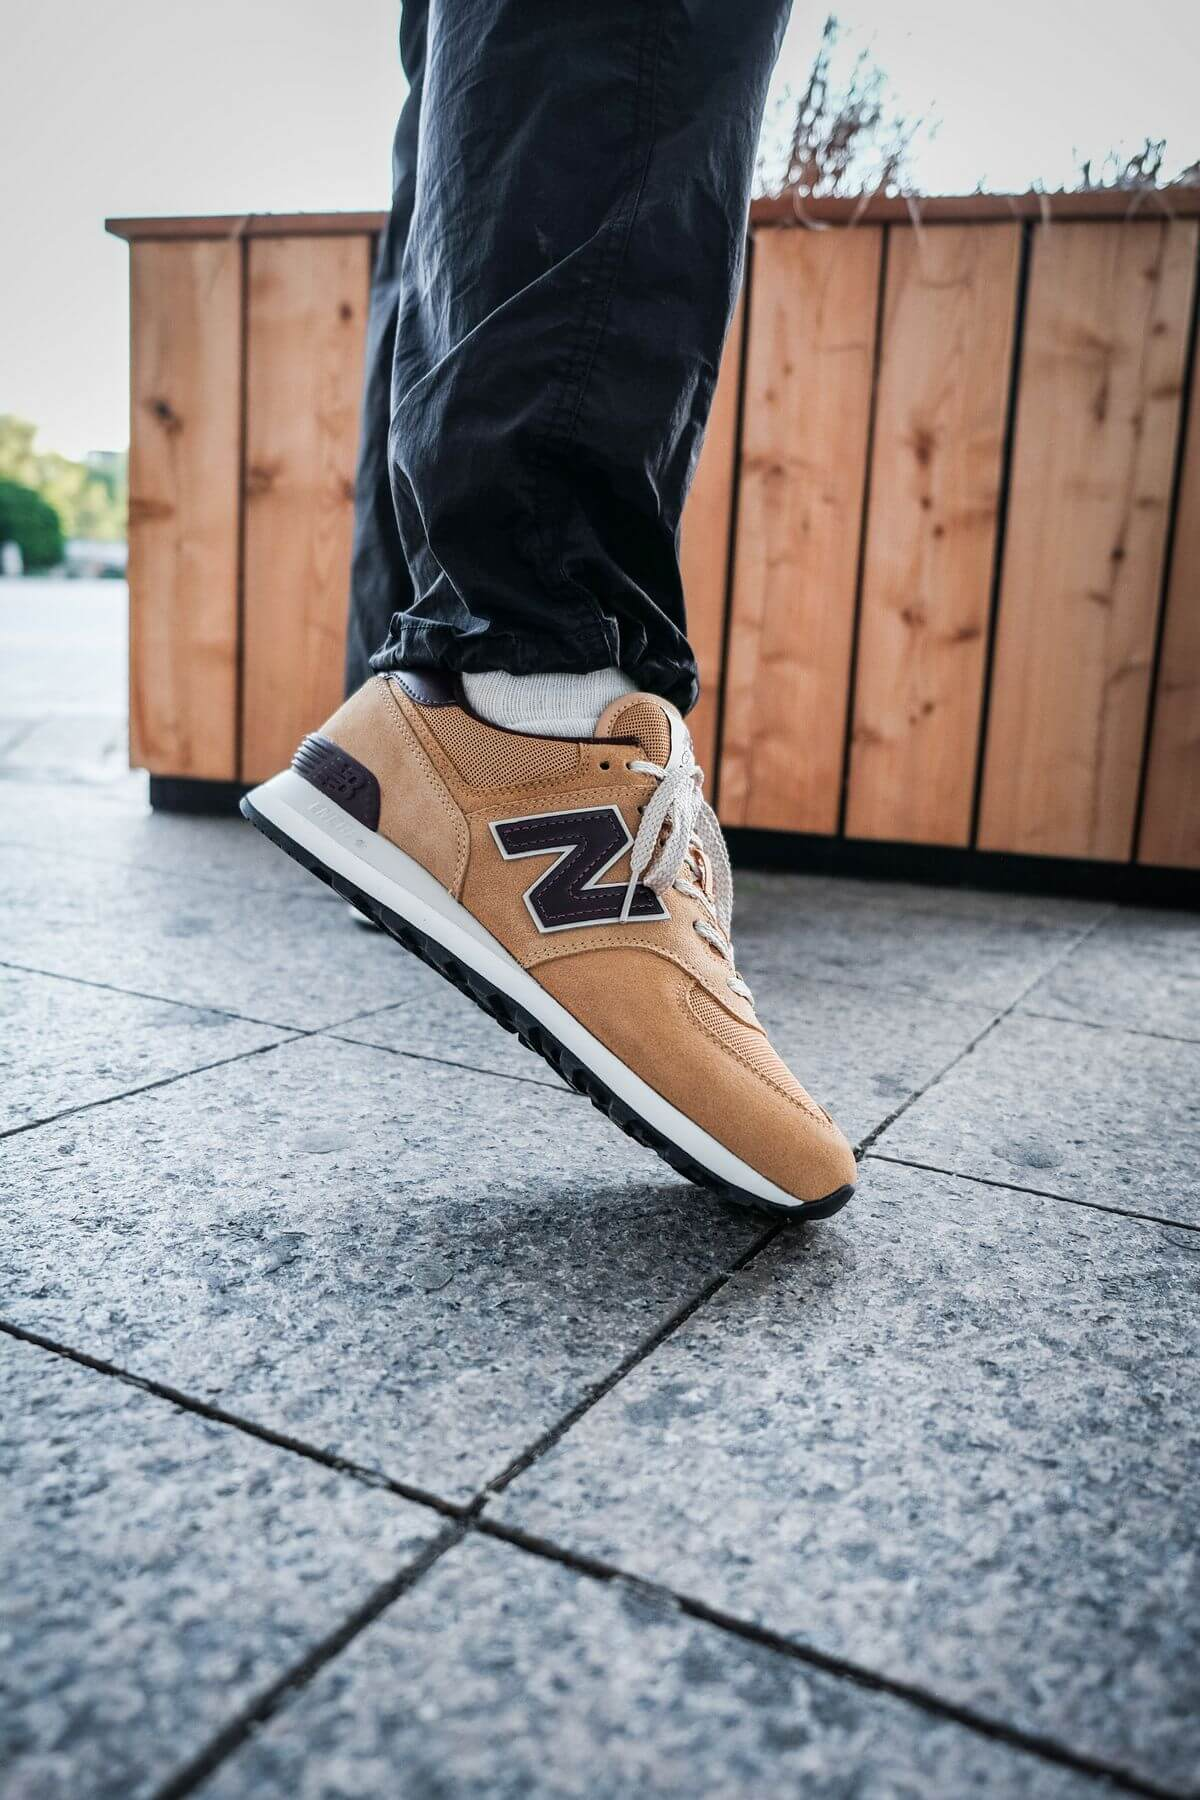 on feet - the New Balance - 574 History Class Pack - ML574BF2 - brown